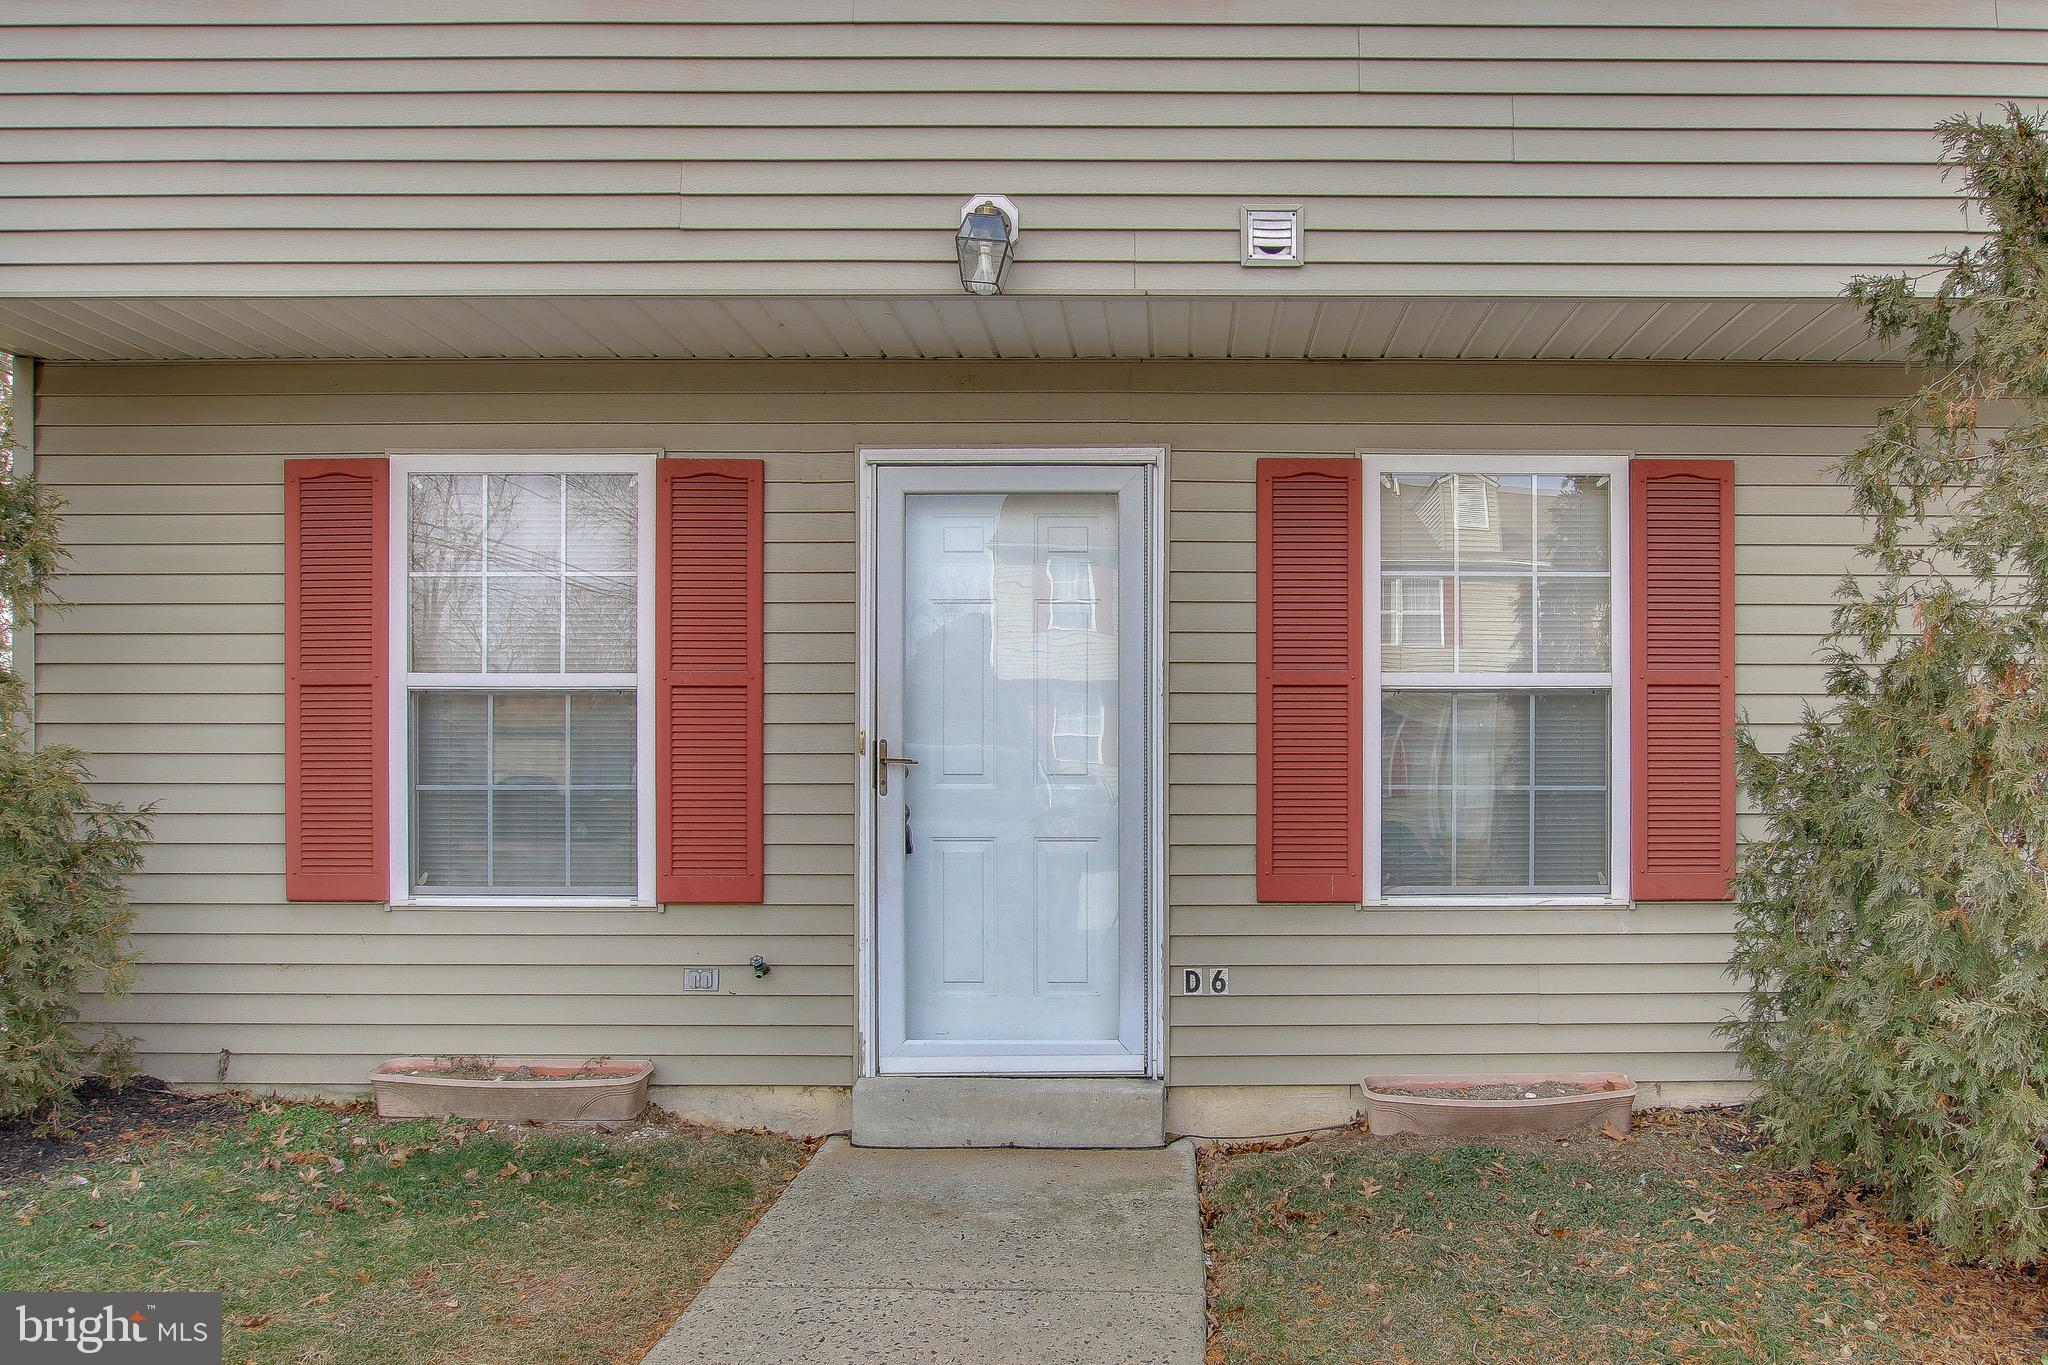 550 CHESTER PIKE D6, NORWOOD, PA 19074